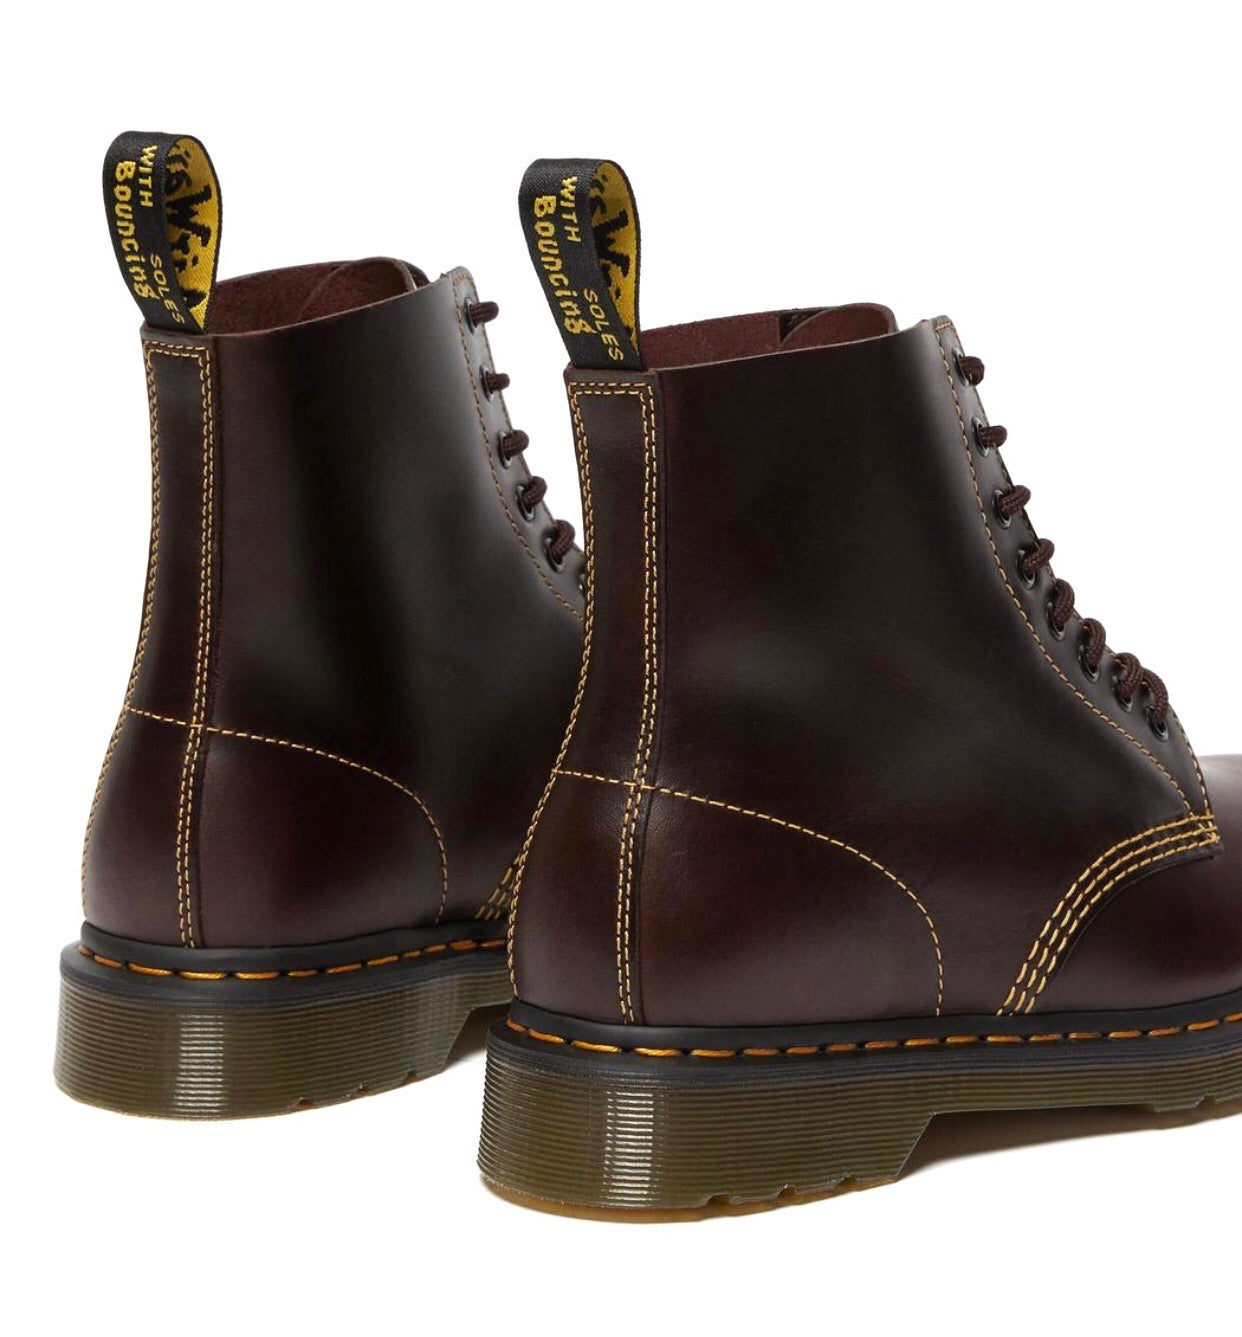 Dr. Martens 1460 Pascal Oxblood Atlas Ankle 8 Eyelet Boot